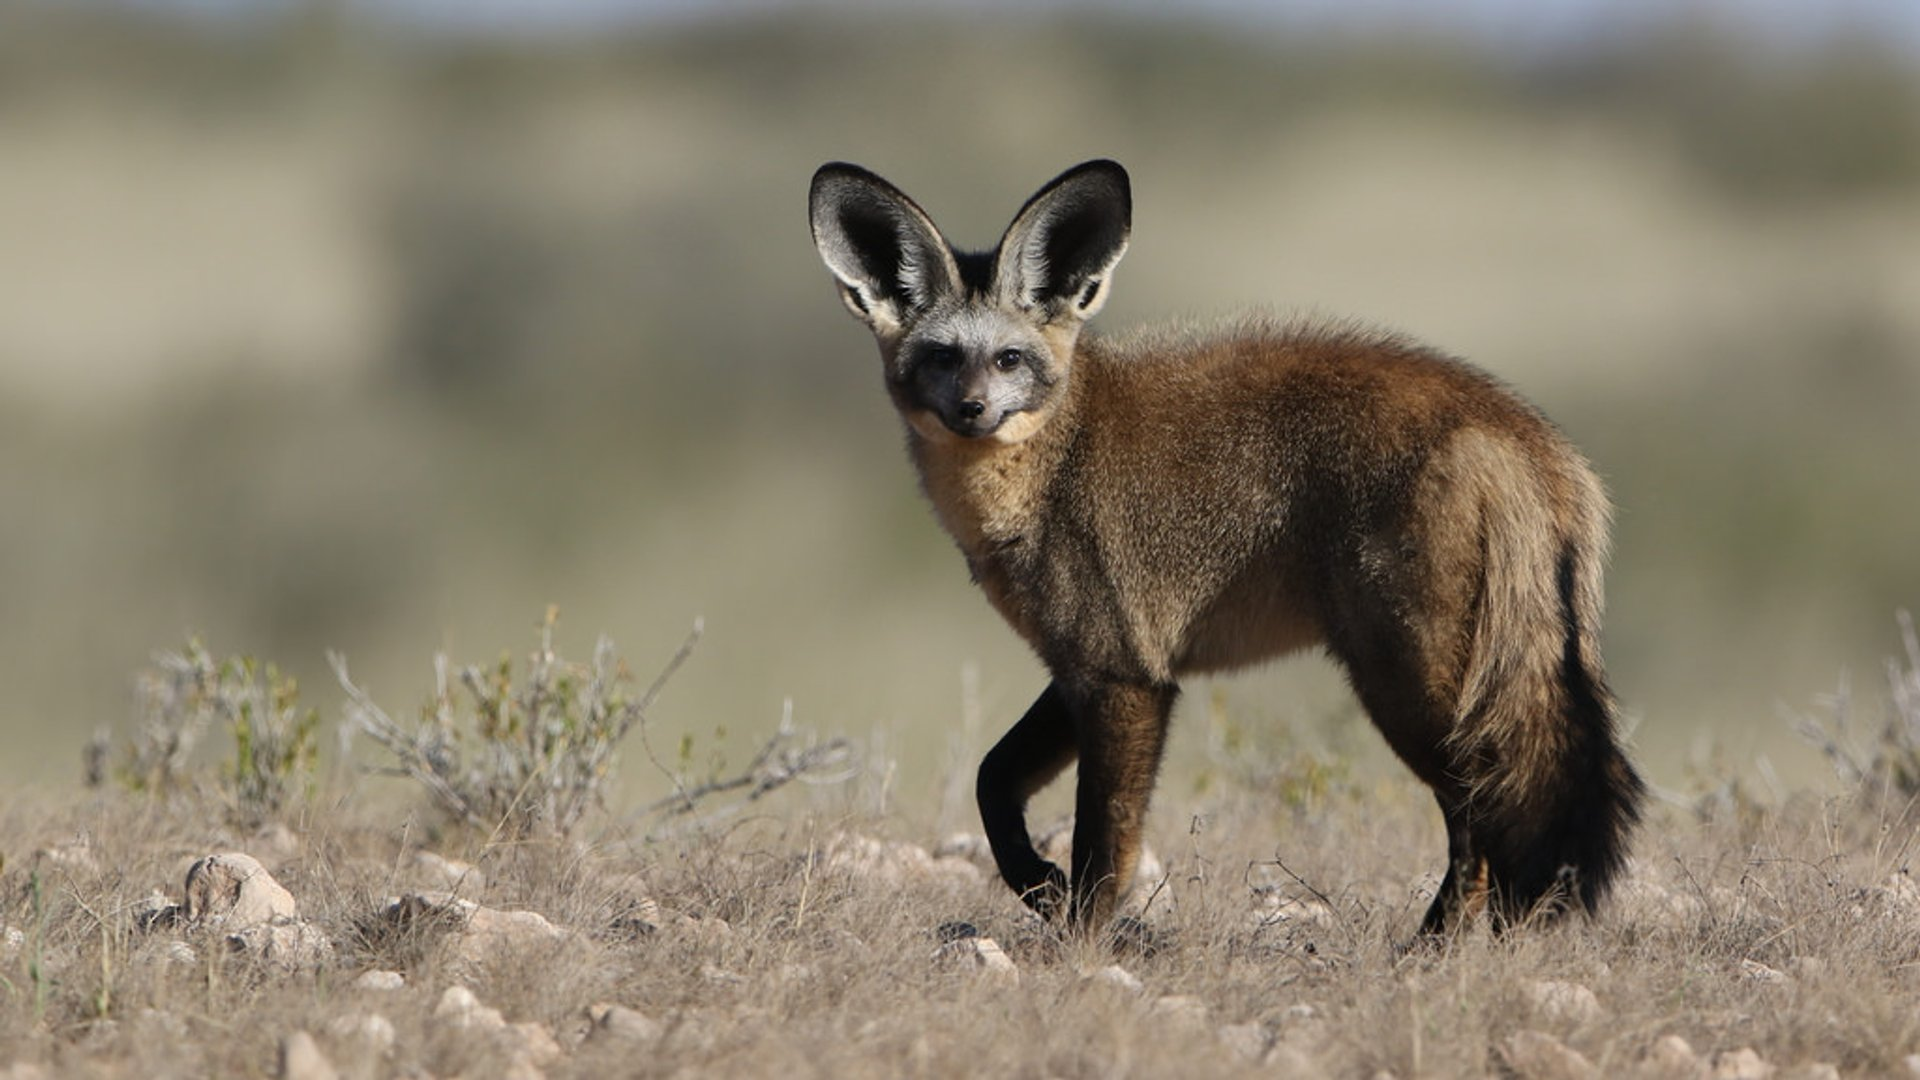 Bat-eared fox at Kgalagadi Transfrontier Park, Northern Cape, South Africa 2020